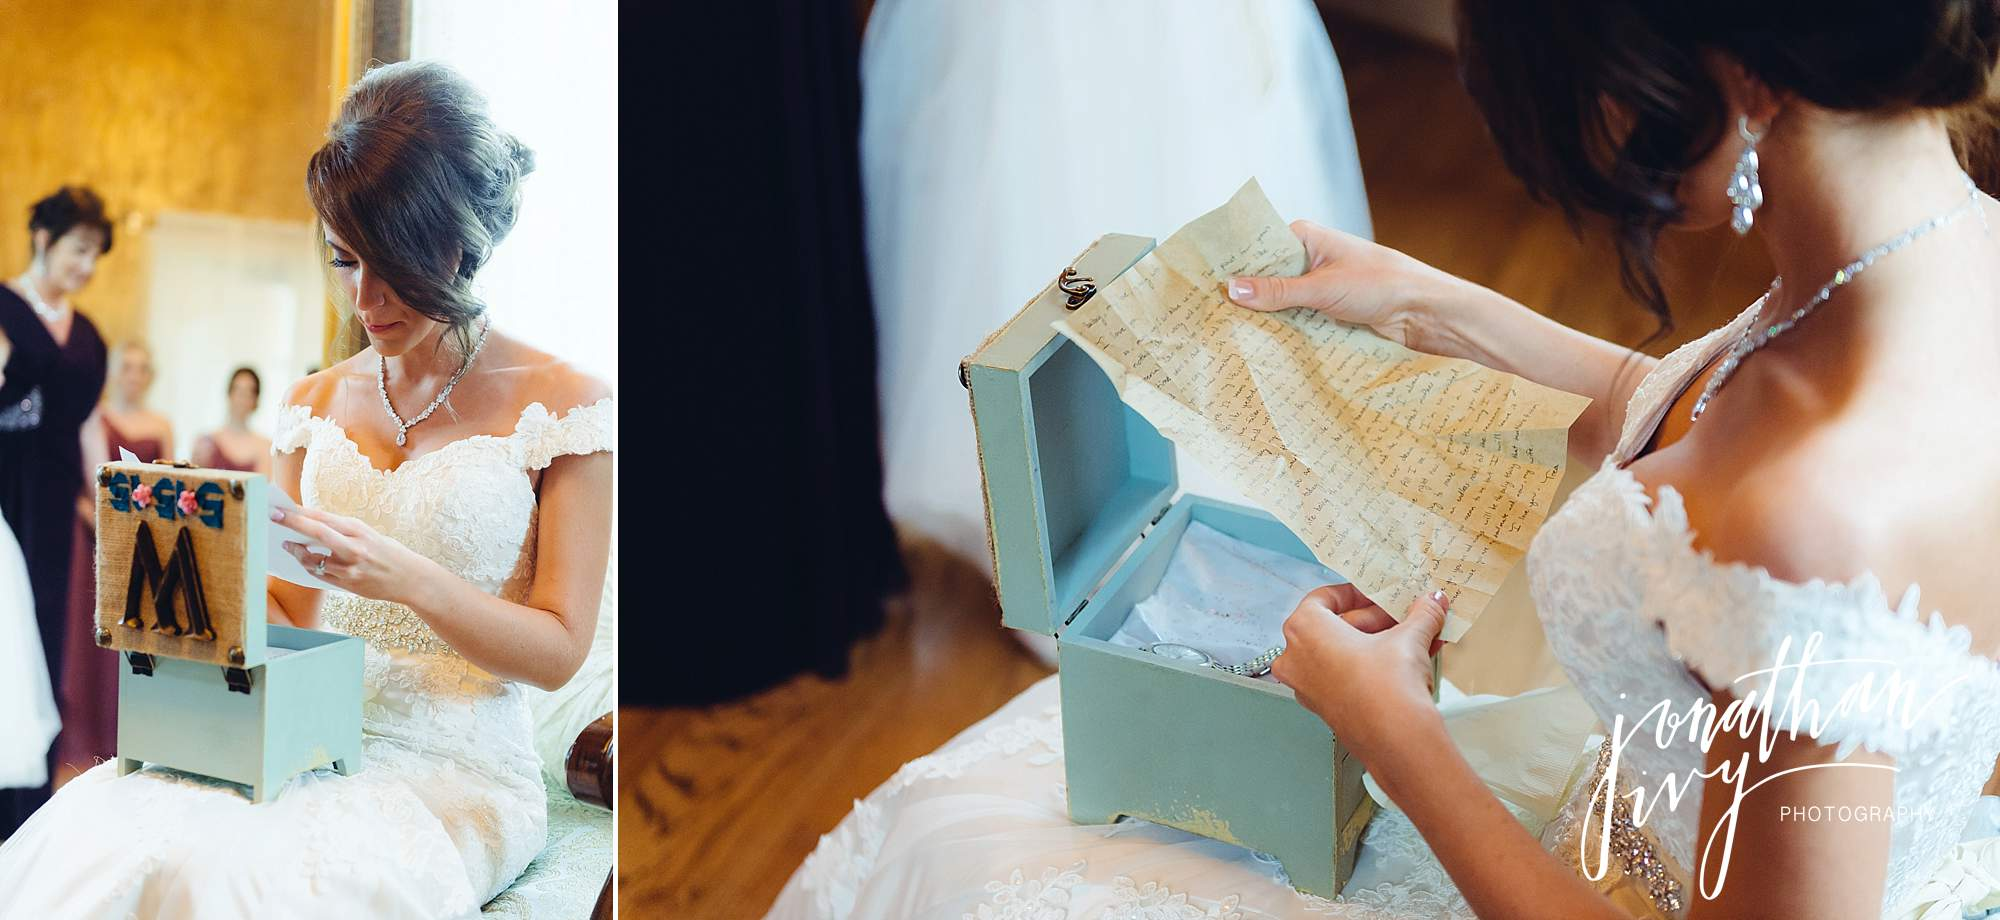 bride opening gift from groom